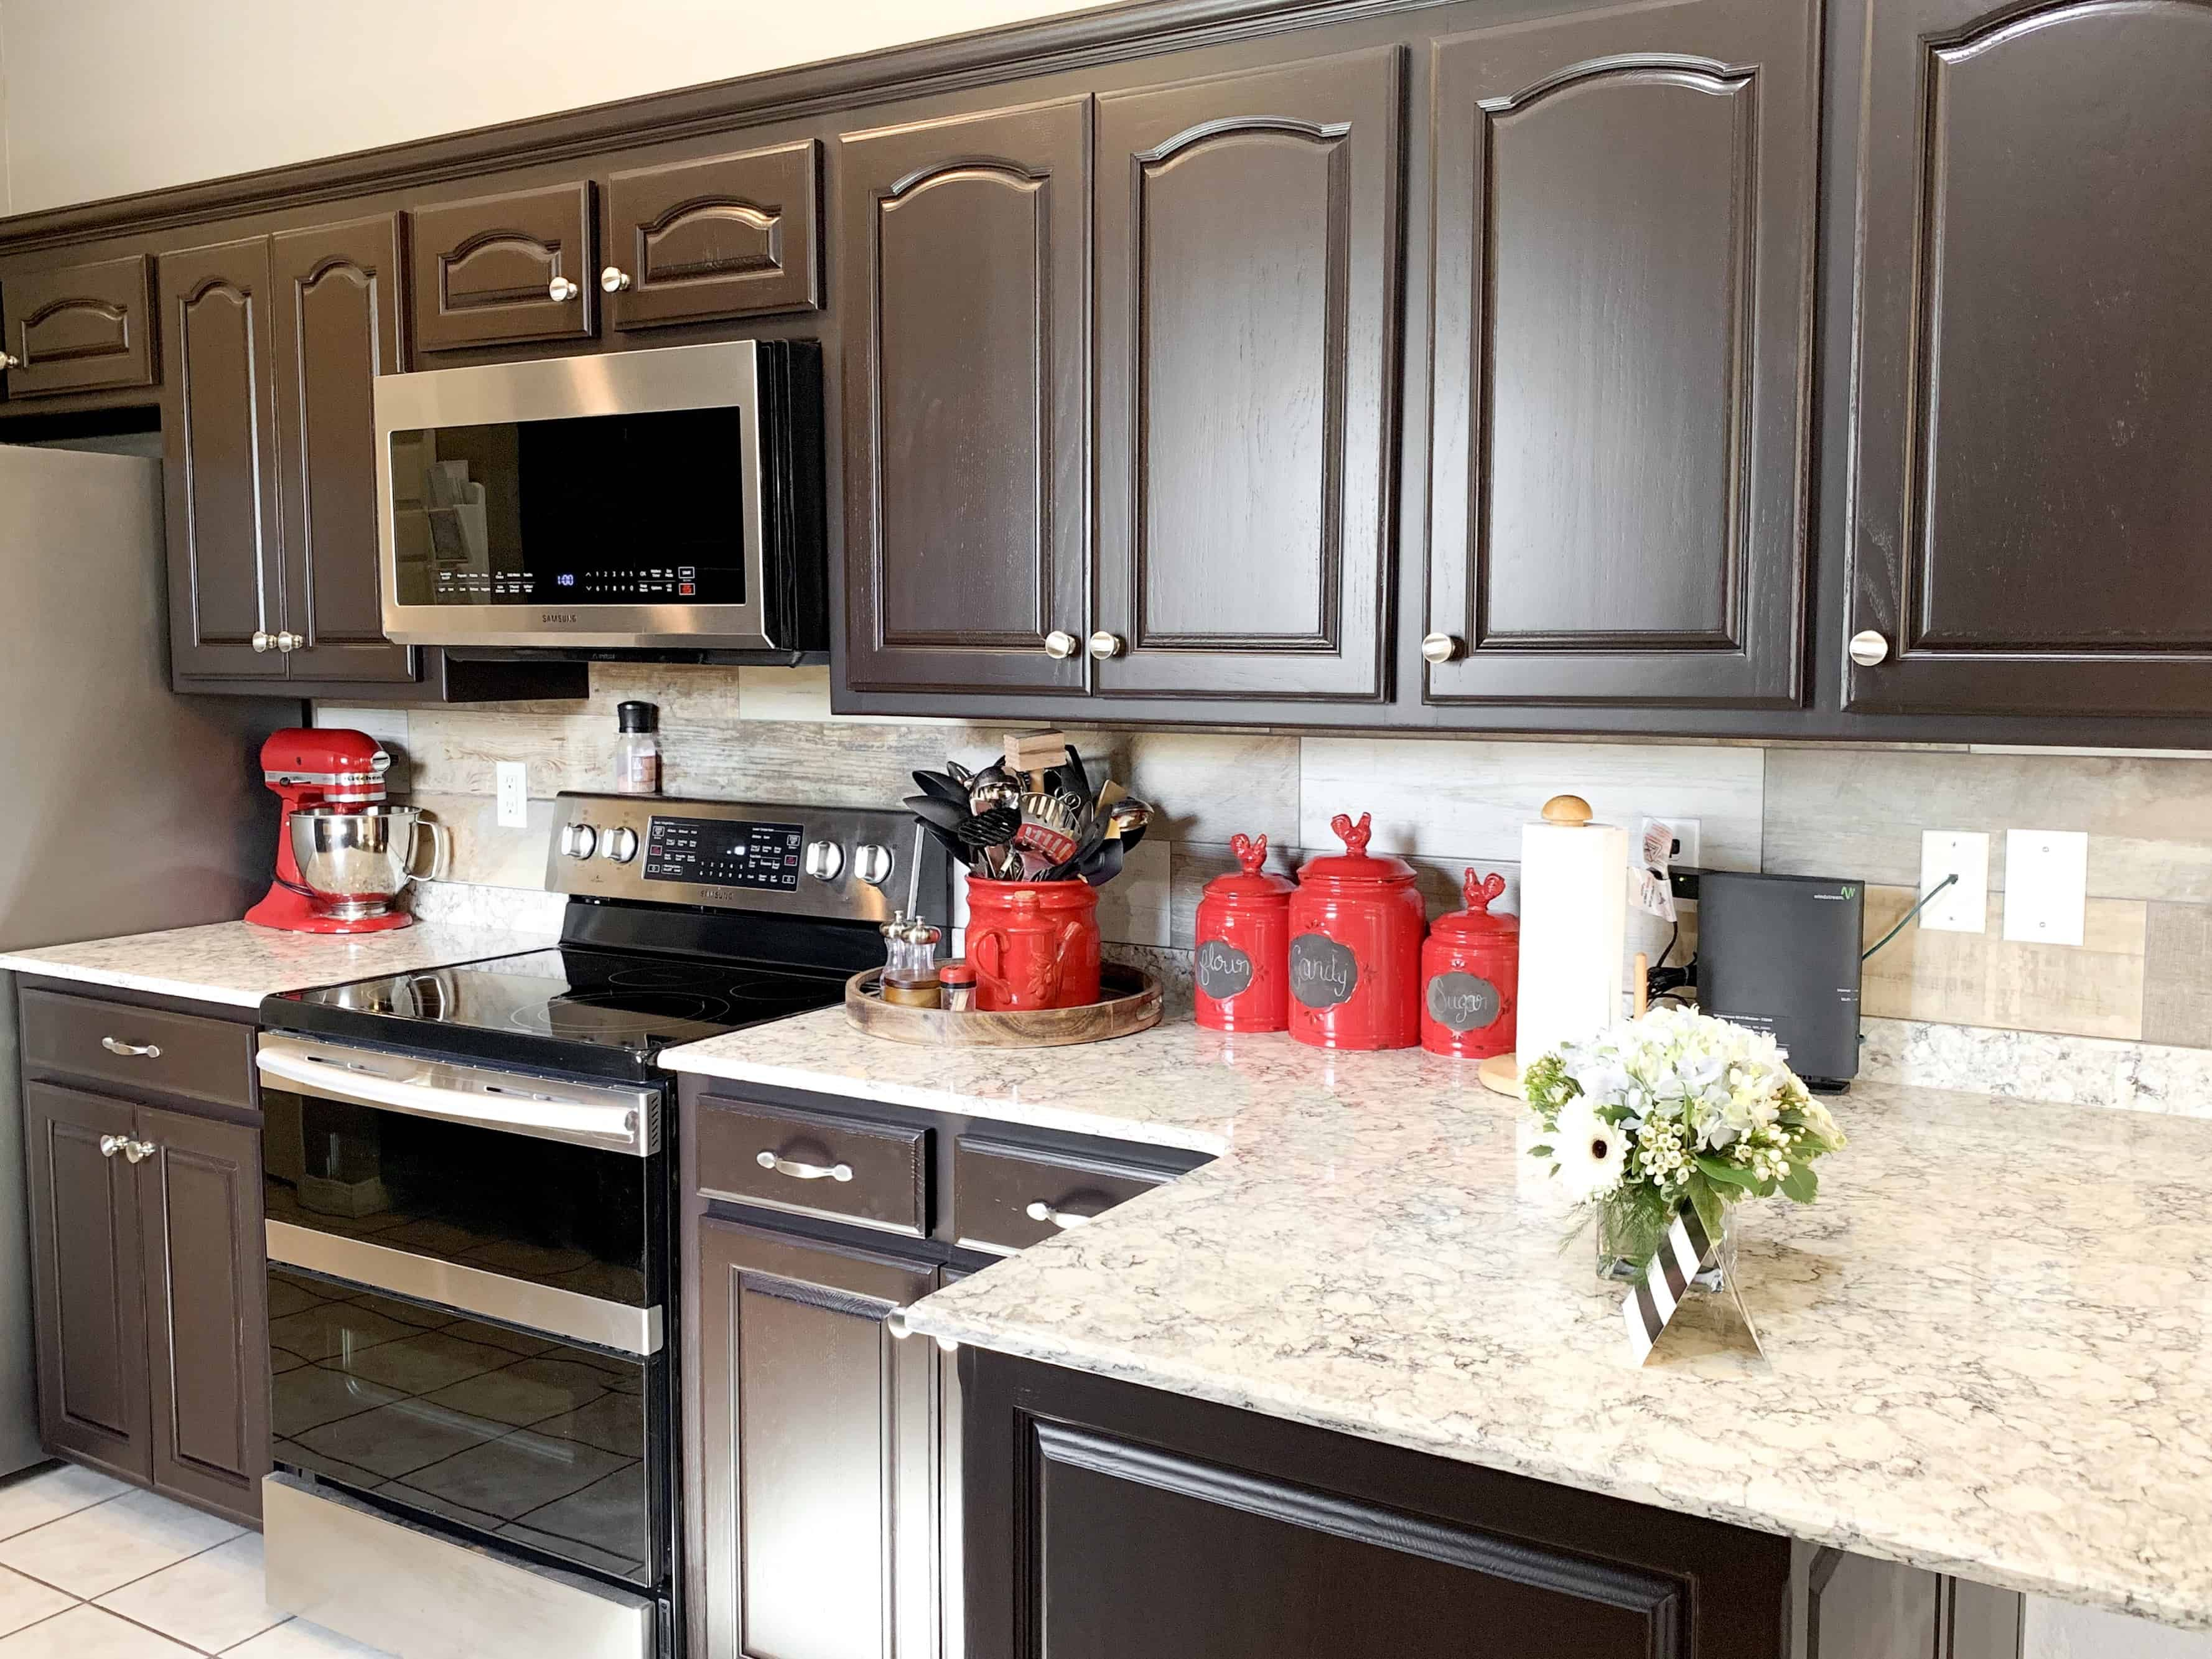 Best Of Can You Paint Kitchen Cabinets Dark Brown And Pics In 2020 Brown Kitchen Cabinets Dark Kitchen Cabinets White Kitchen Cabinets